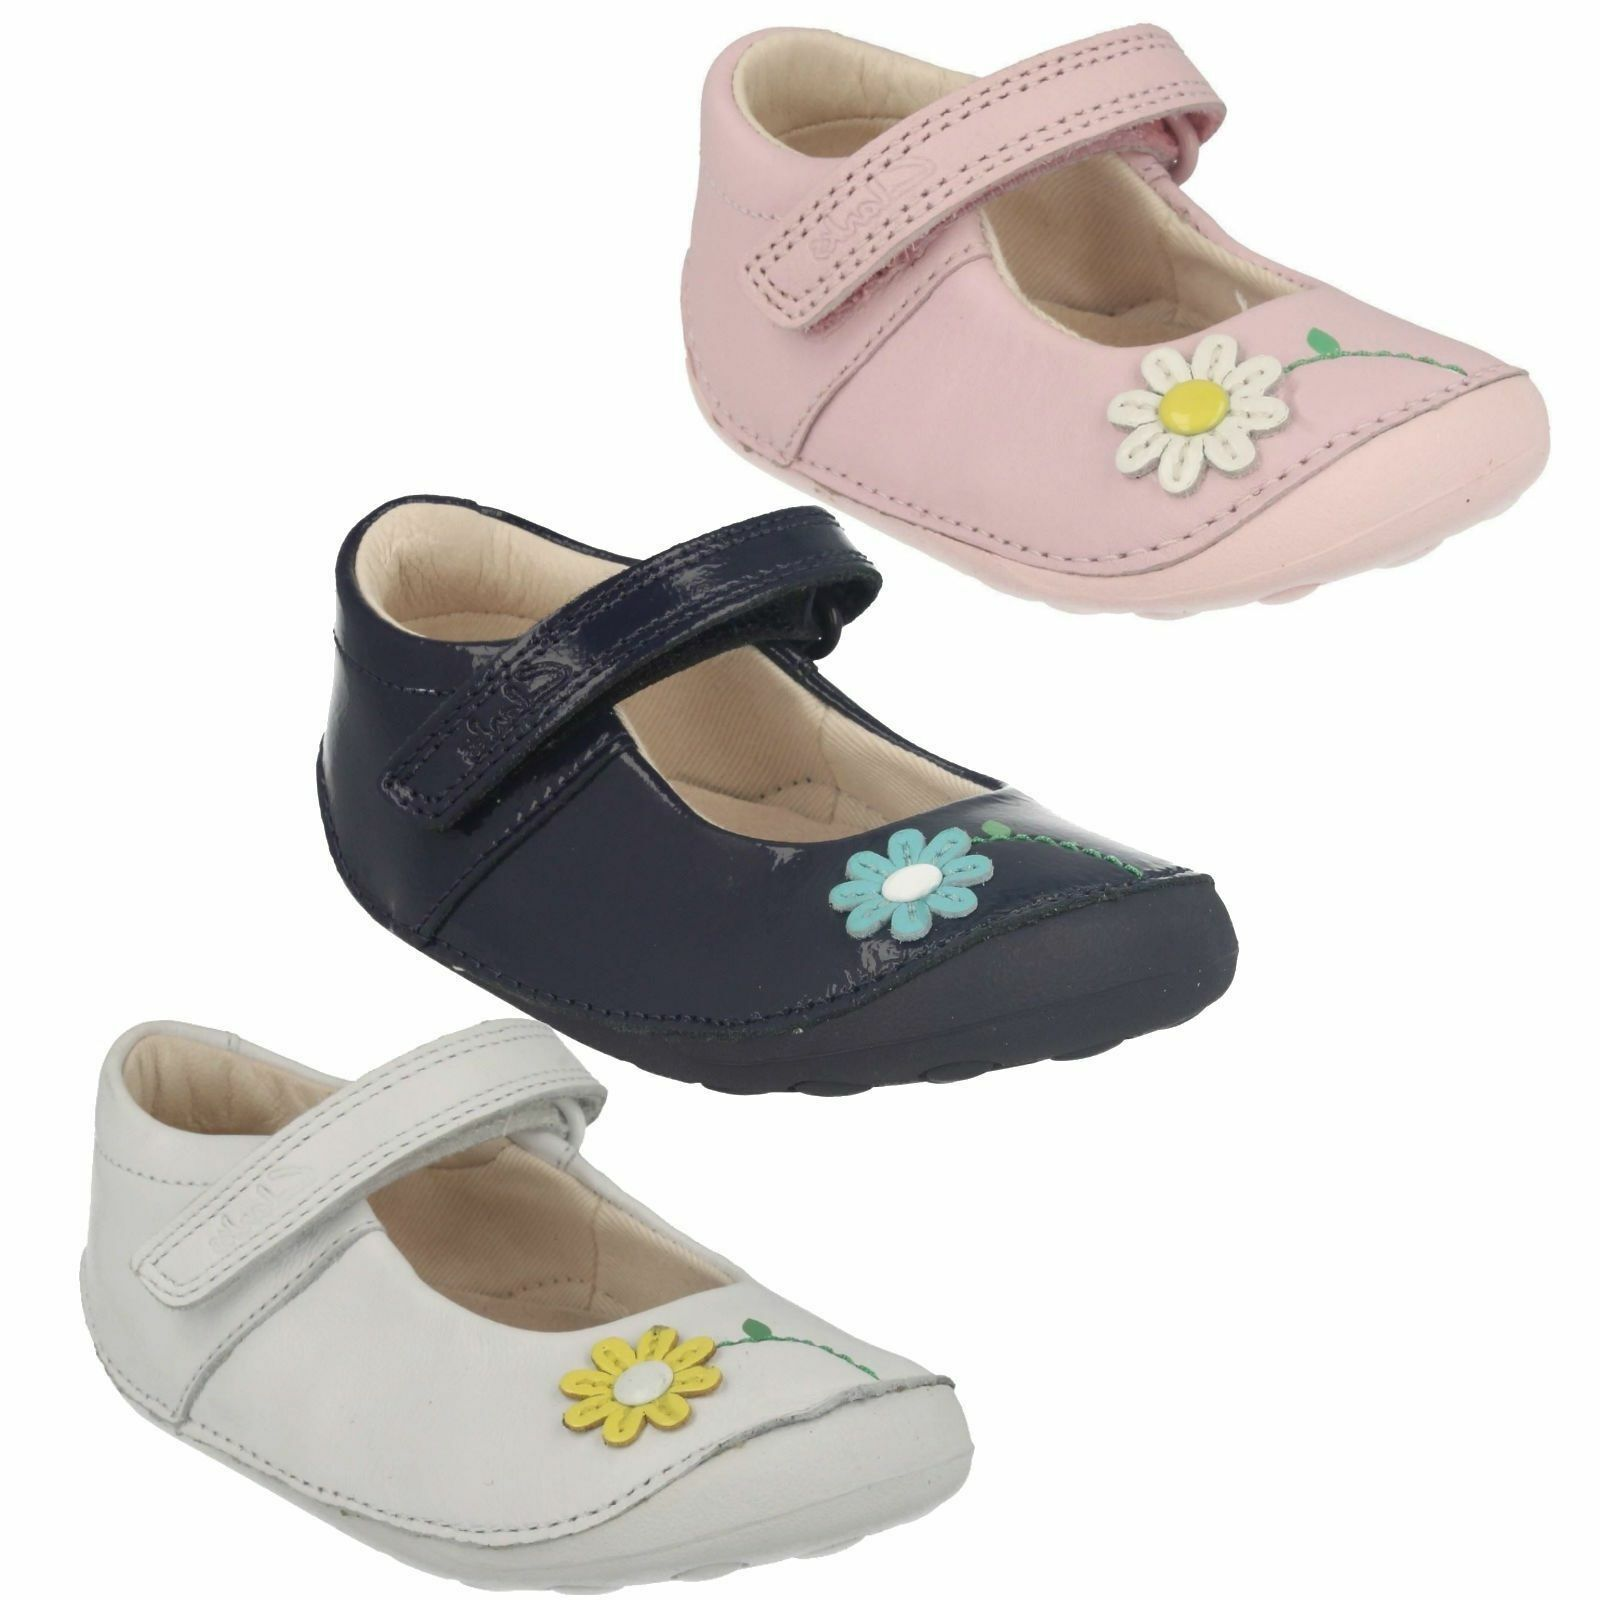 GIRLS TODDLER CLARKS LITTLE JAM HOOK & LOOP CASUAL KIDS LEATHER FIRST SHOES SIZE